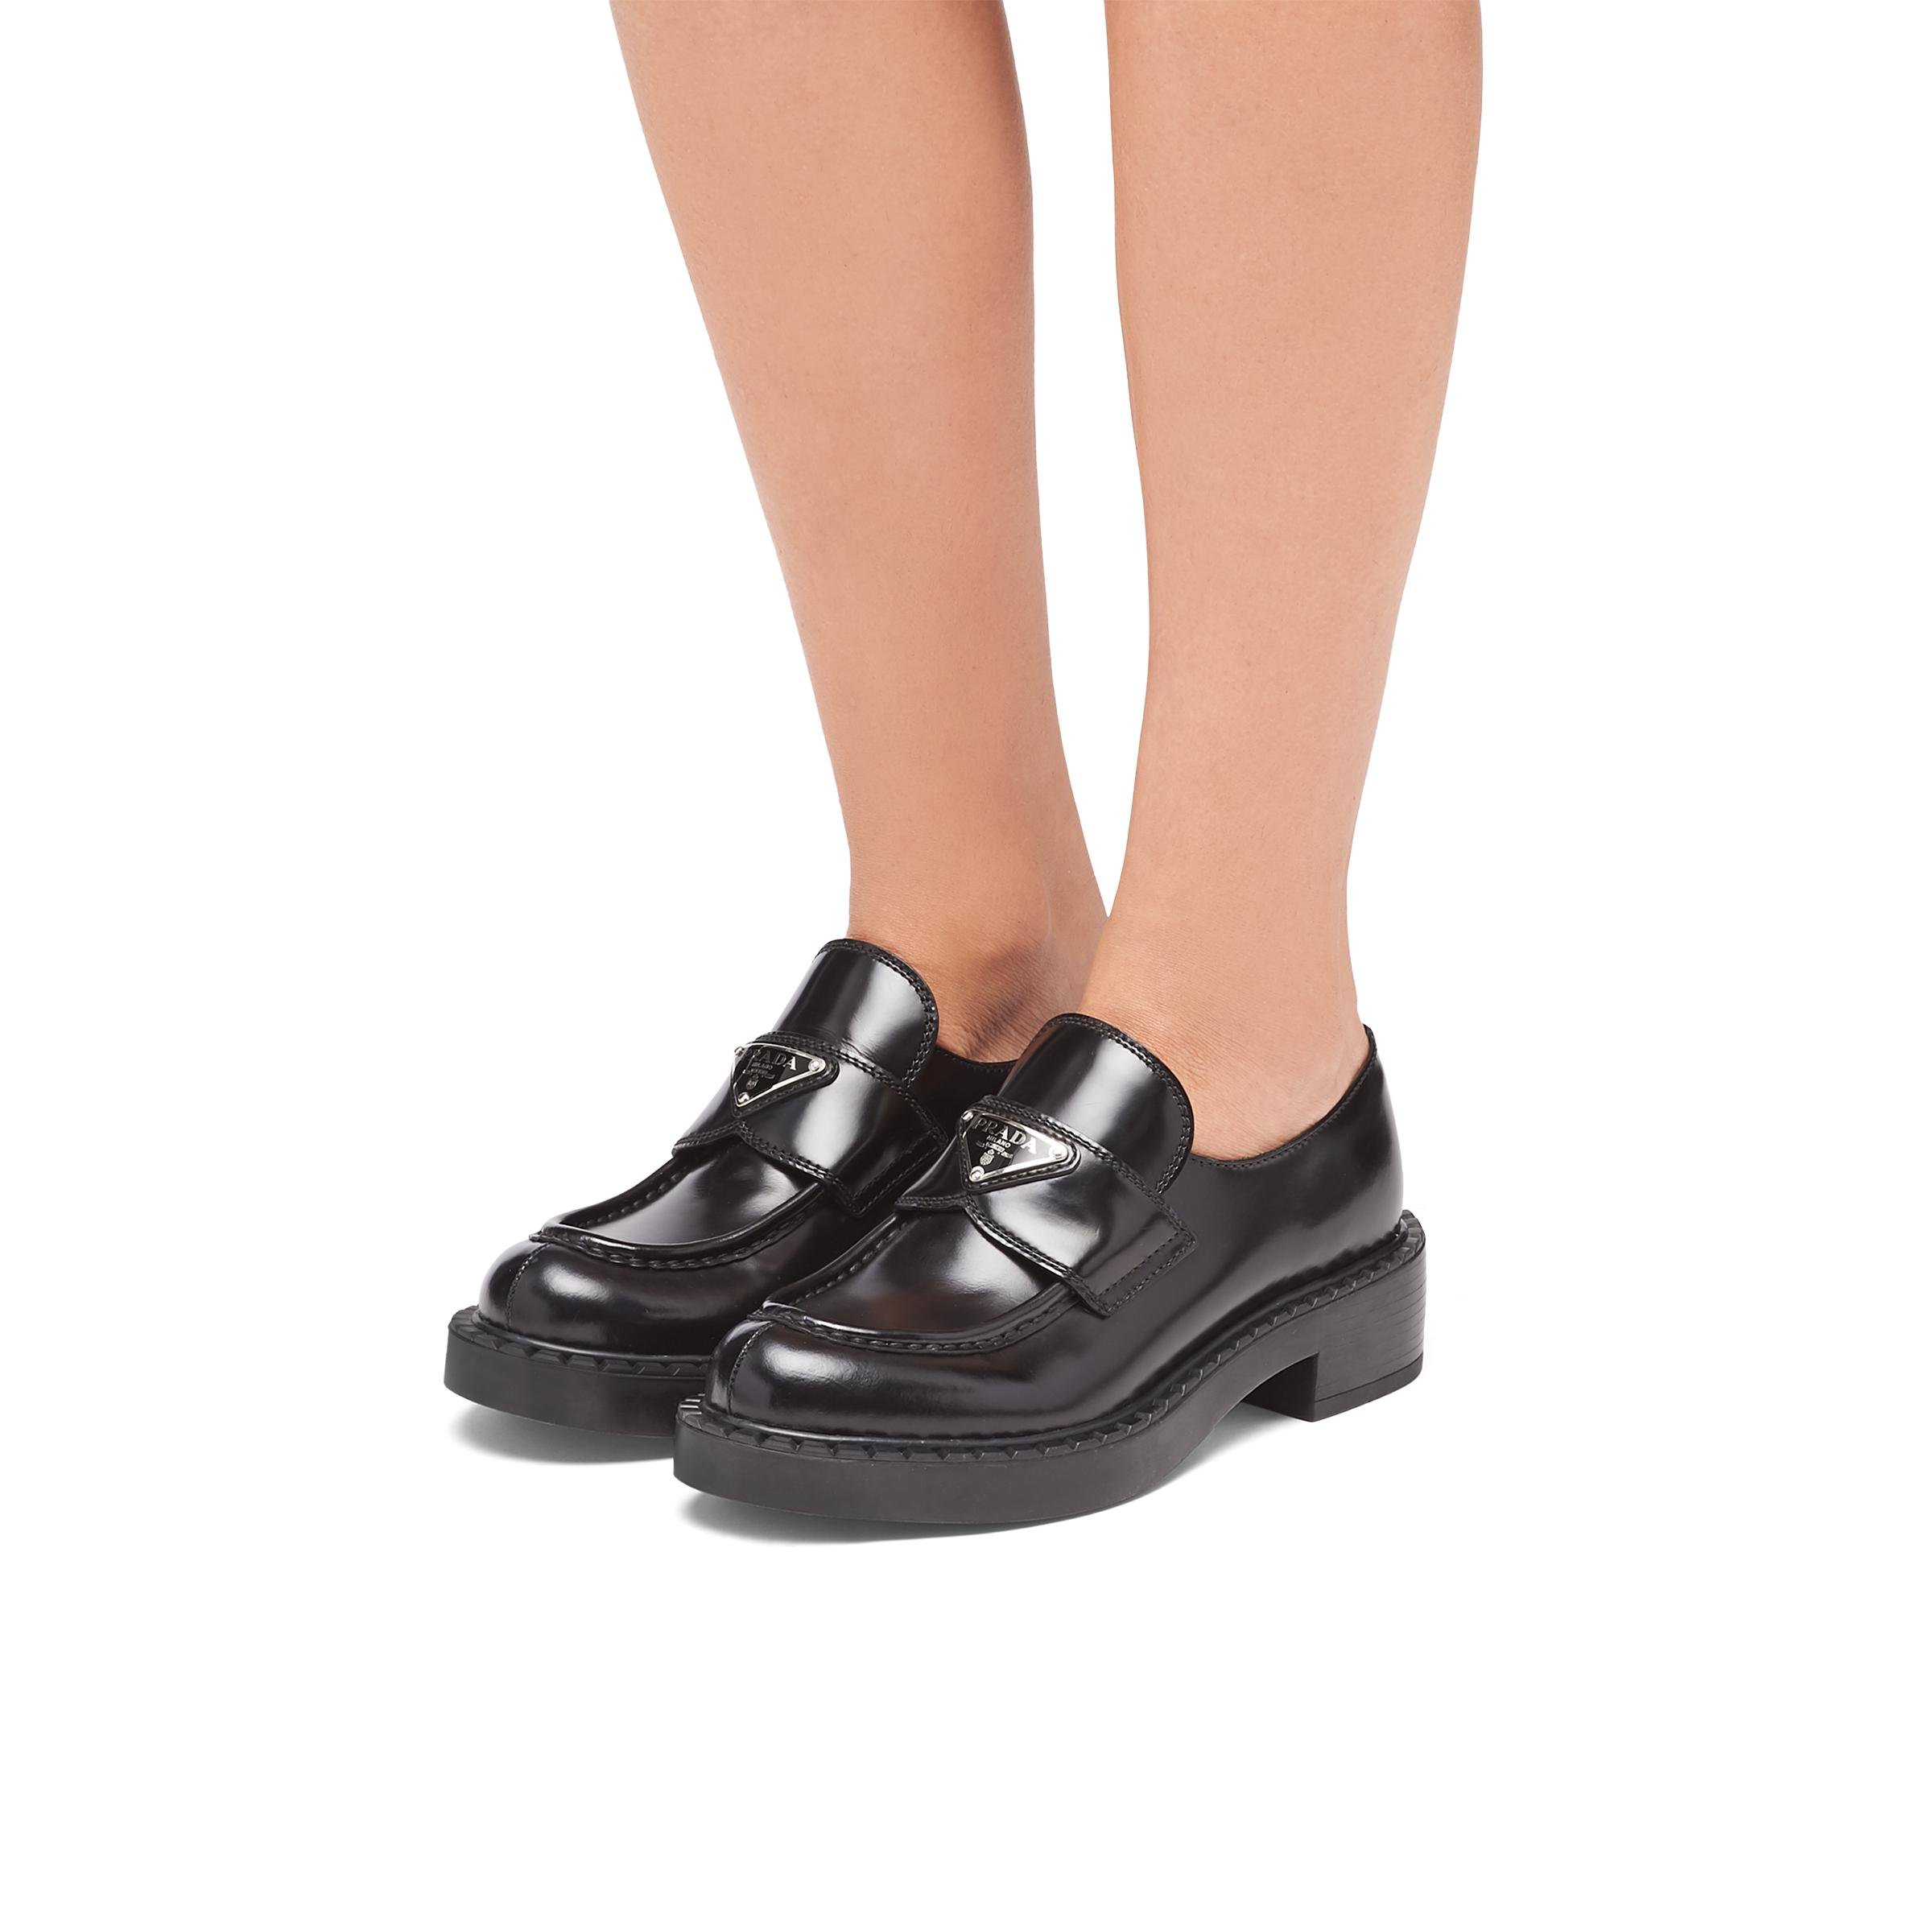 Brushed Leather Loafers Women Black 4